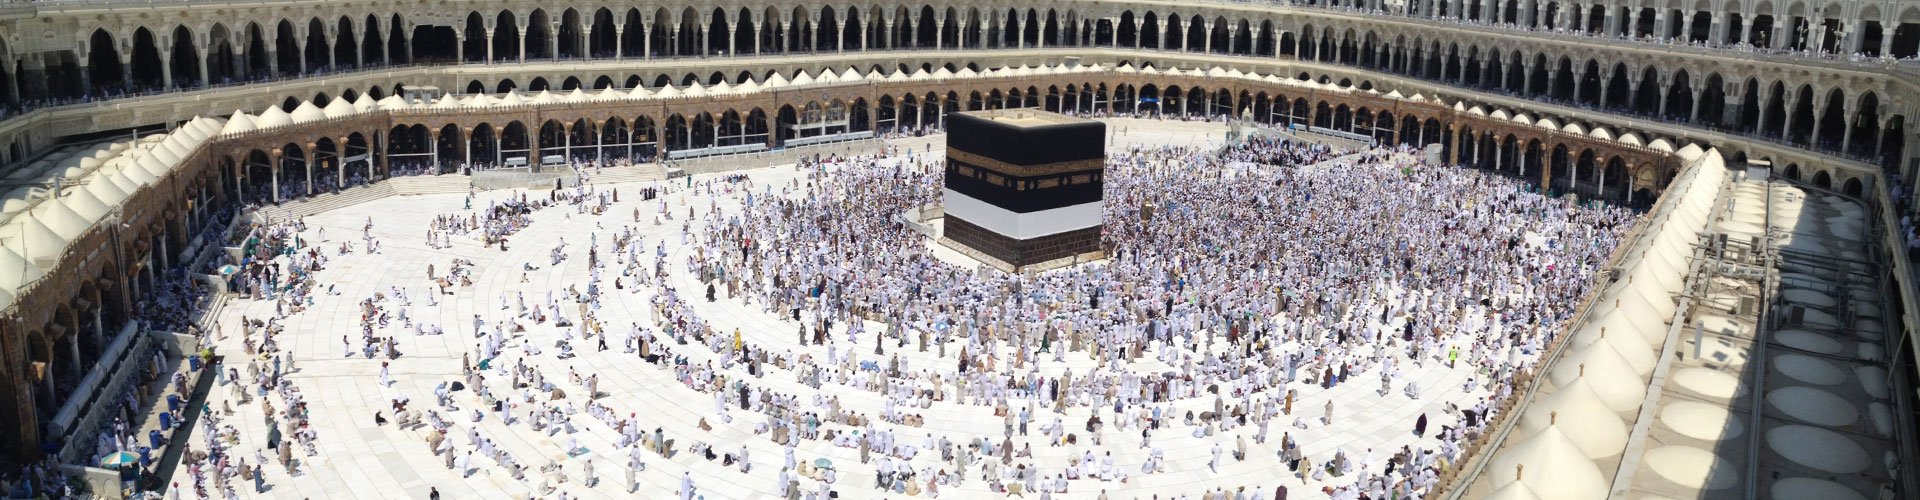 exploration of hajj Hajj the spiritual journey of hajj the journey of hajj pilgrimage (hajj) universal lessons of hajj  it promoted scientific and astronomic exploration, and cultivated new ways of navigation and timekeeping in the islamic world, it helped perfect the finding of the qibla.